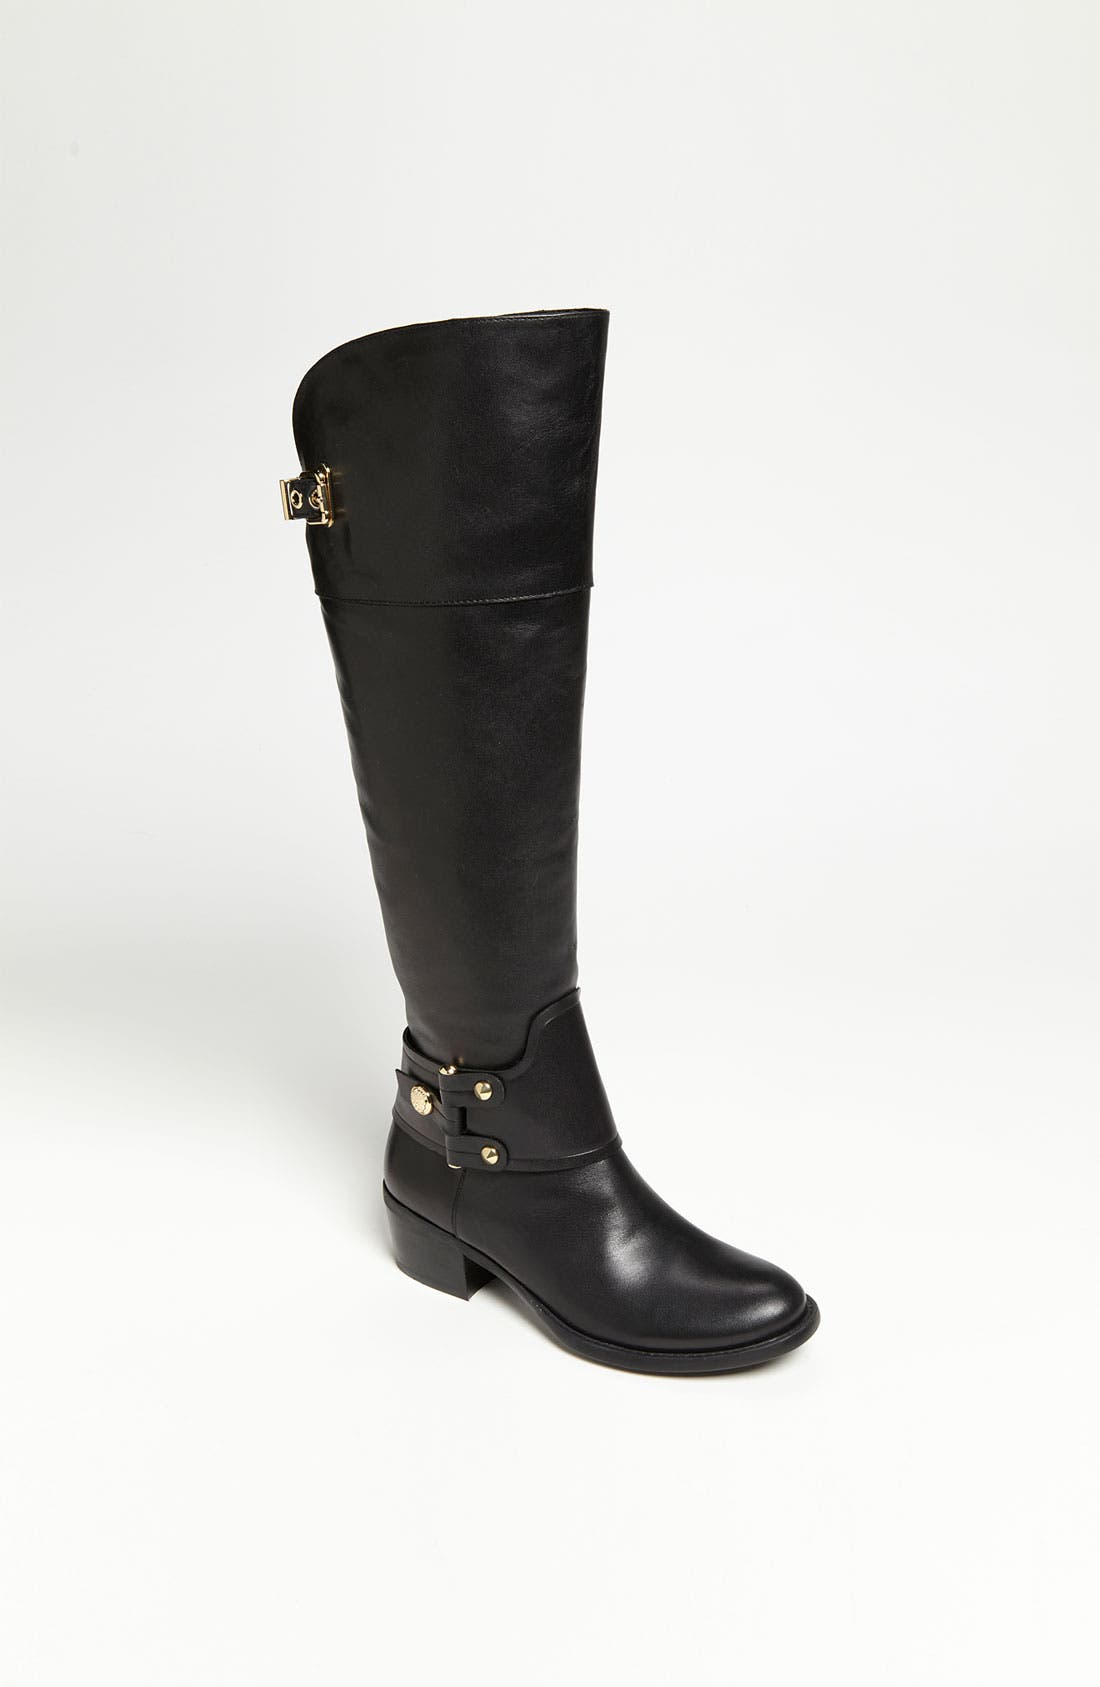 Alternate Image 1 Selected - Vince Camuto 'Brooklee' Over the Knee Boot